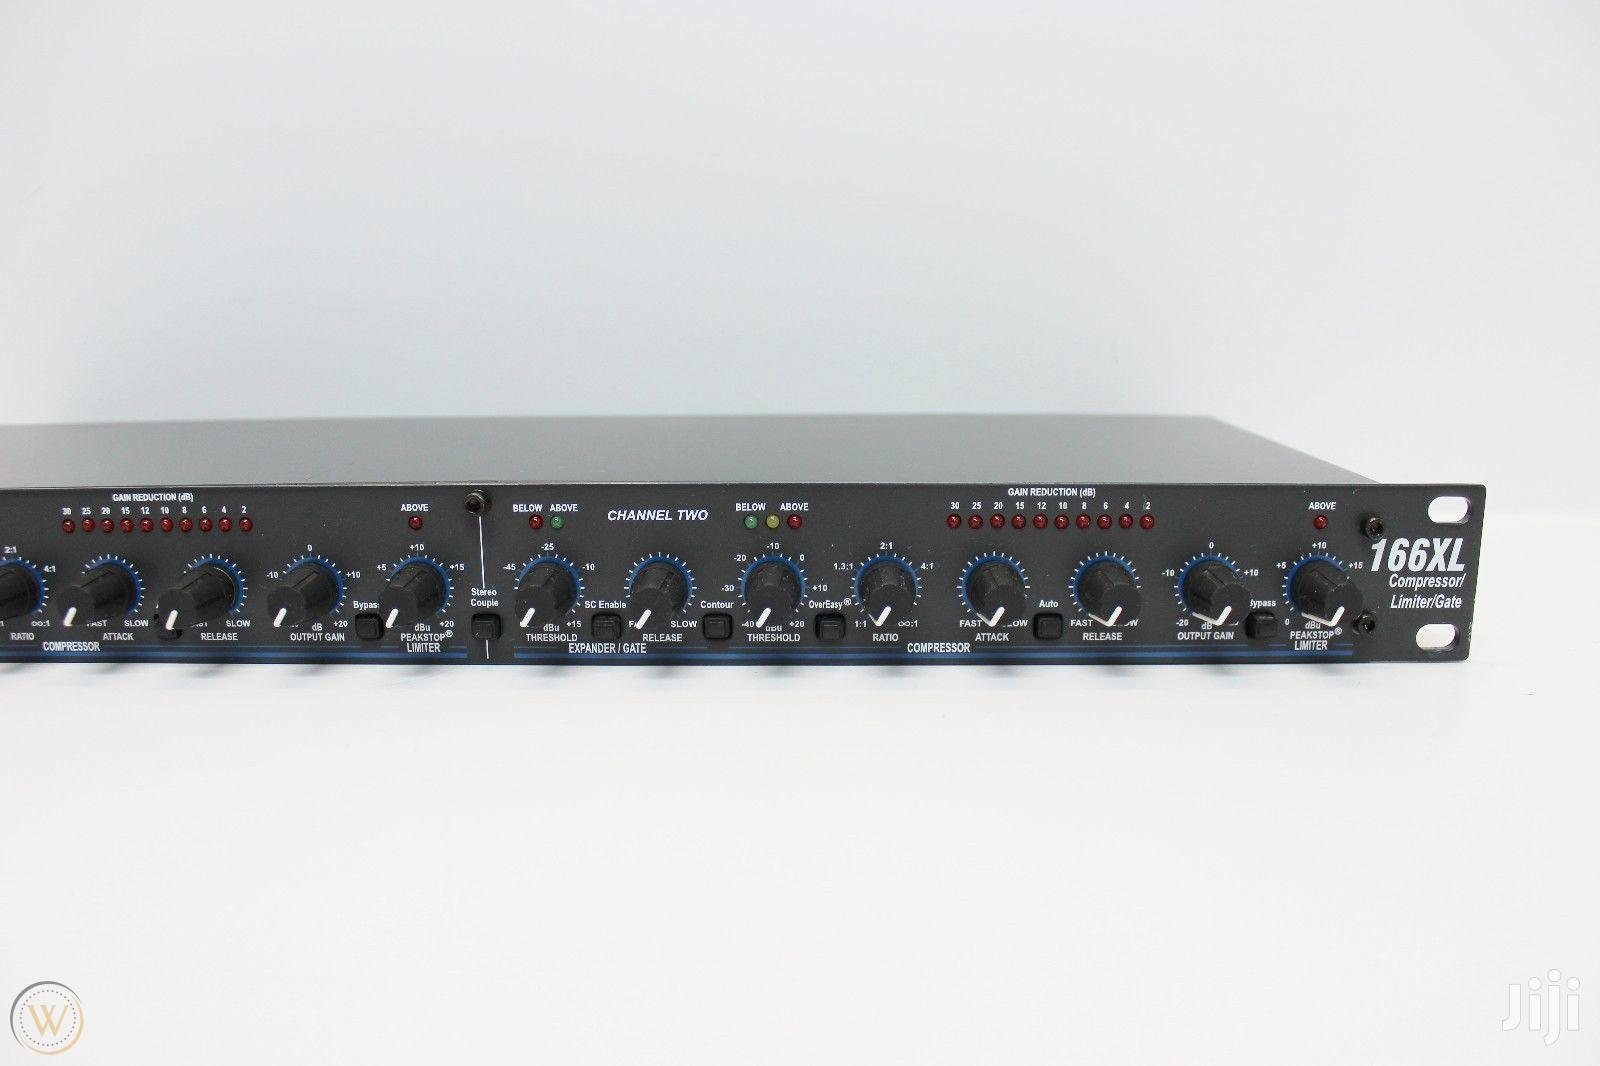 DBX 166xl Compressor/ Limiter/ Gate | Audio & Music Equipment for sale in Tesano, Greater Accra, Ghana